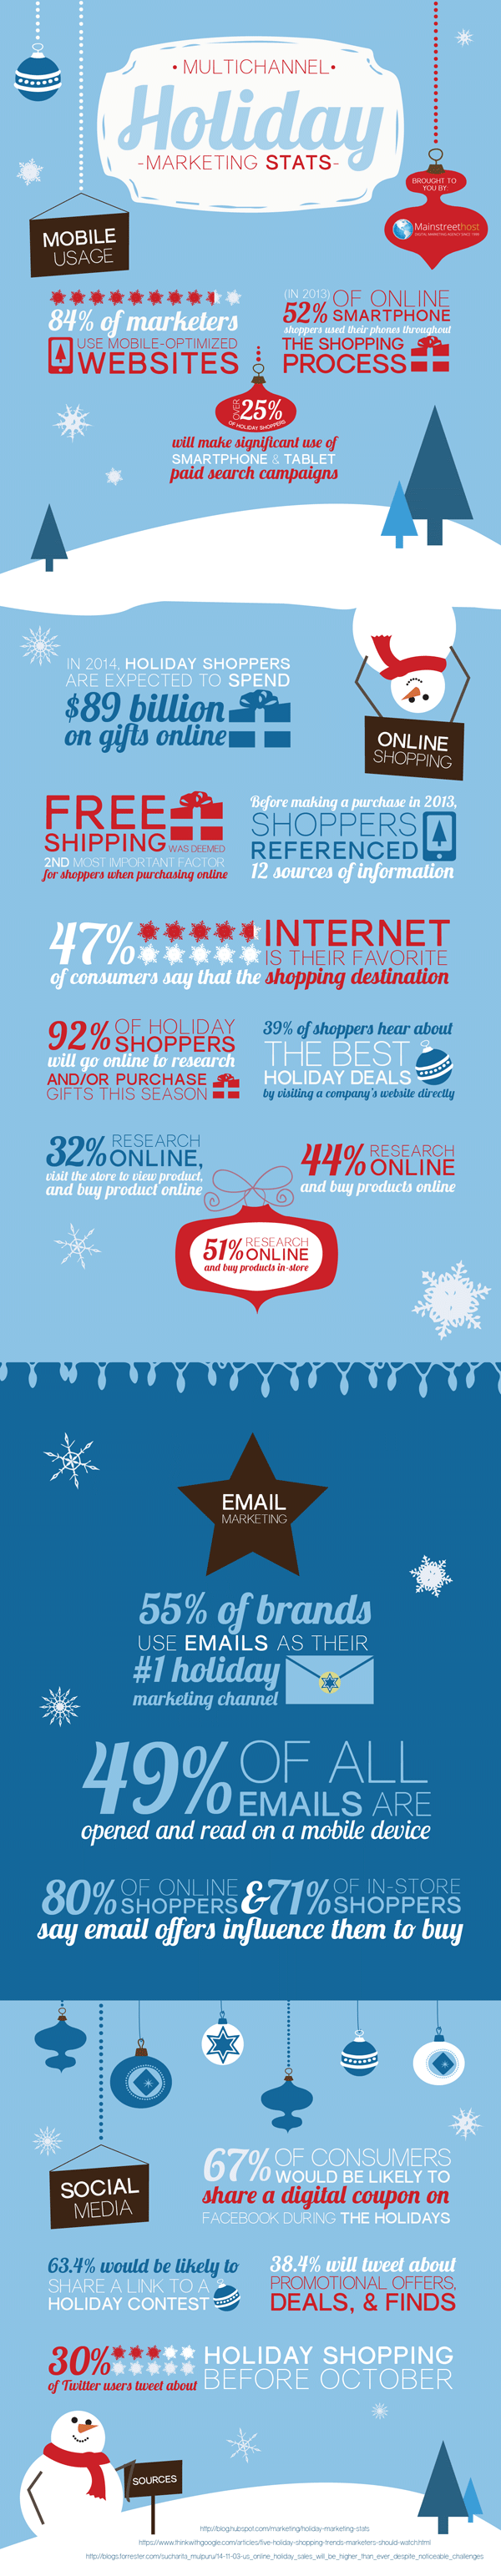 holidays-infographic